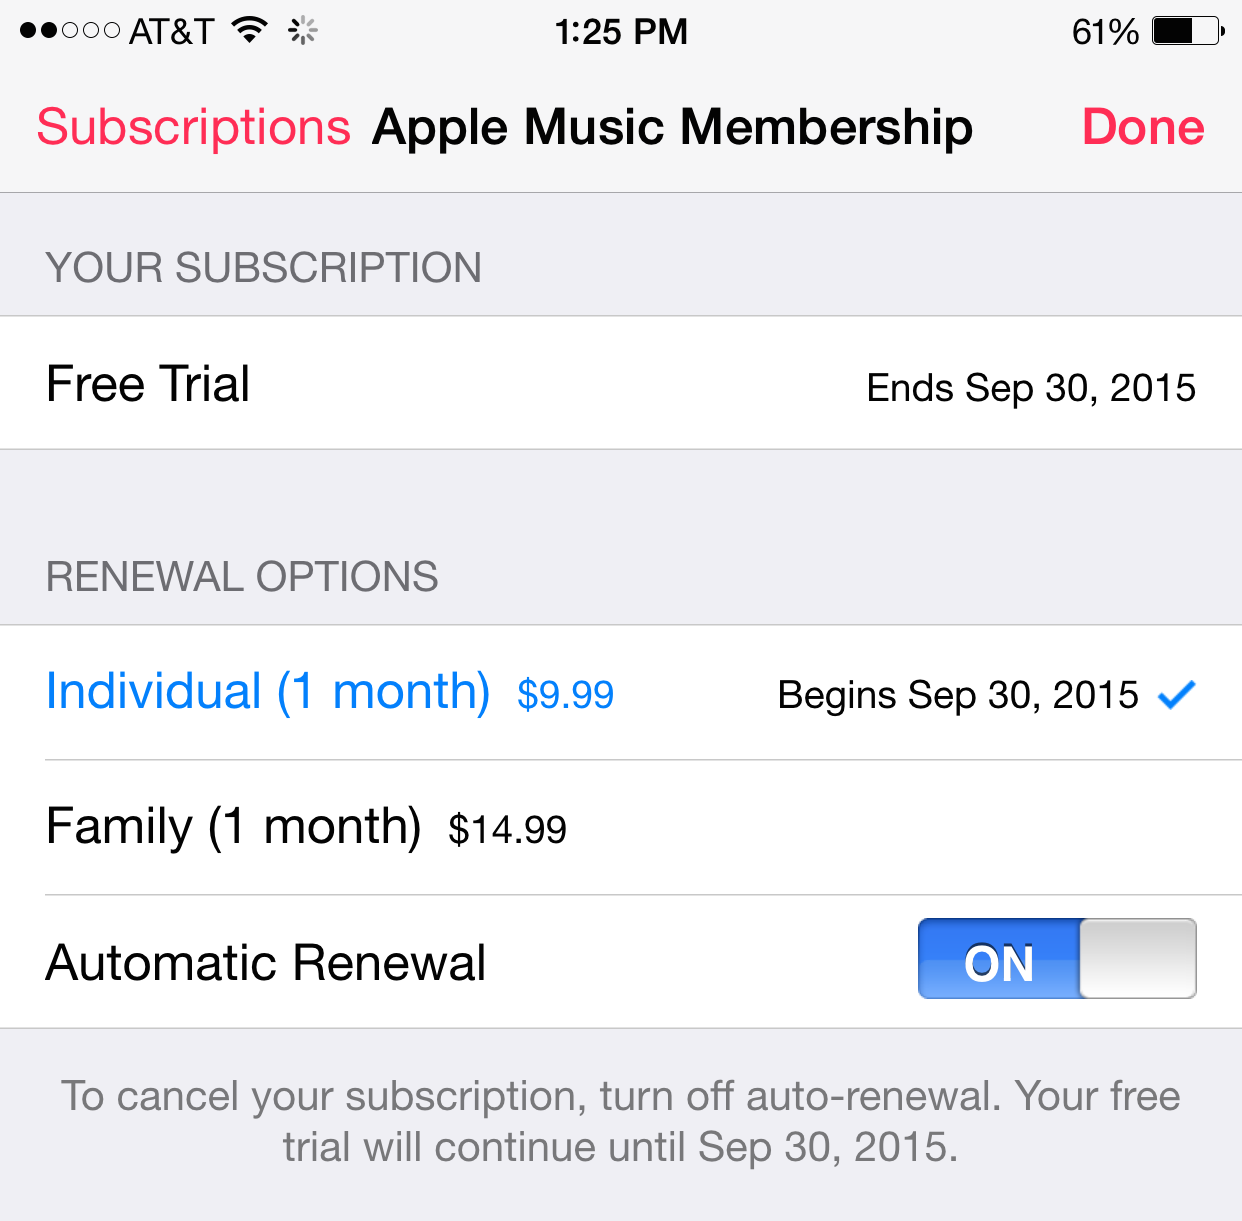 How to disable auto-renewal in Apple Music to avoid charges